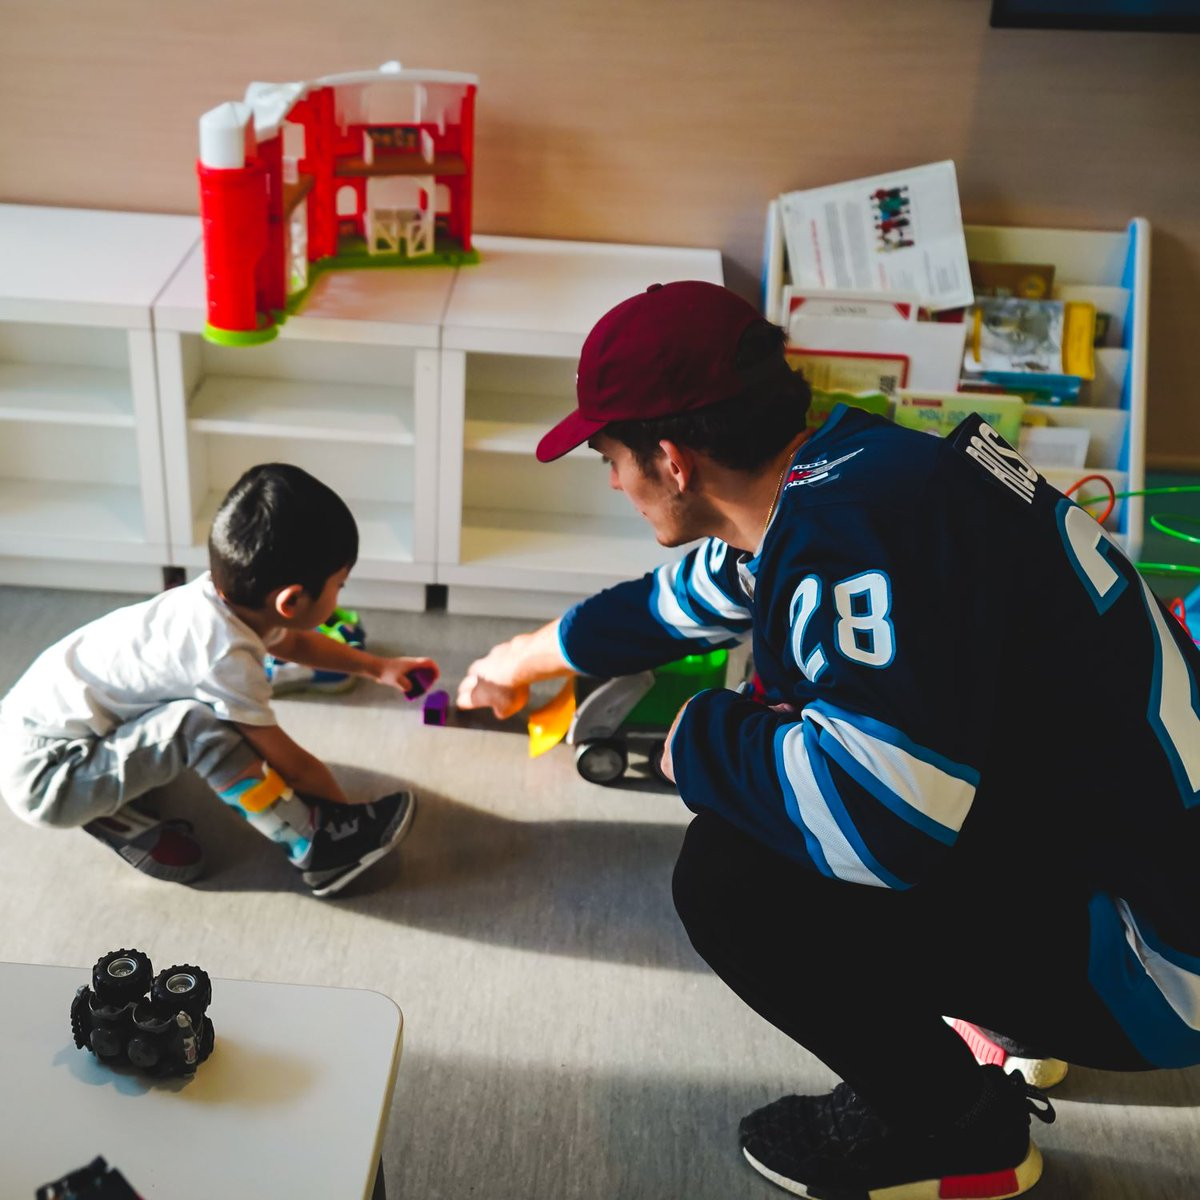 Had a great visit with some of the children in the hospital here in Winnipeg earlier this week!